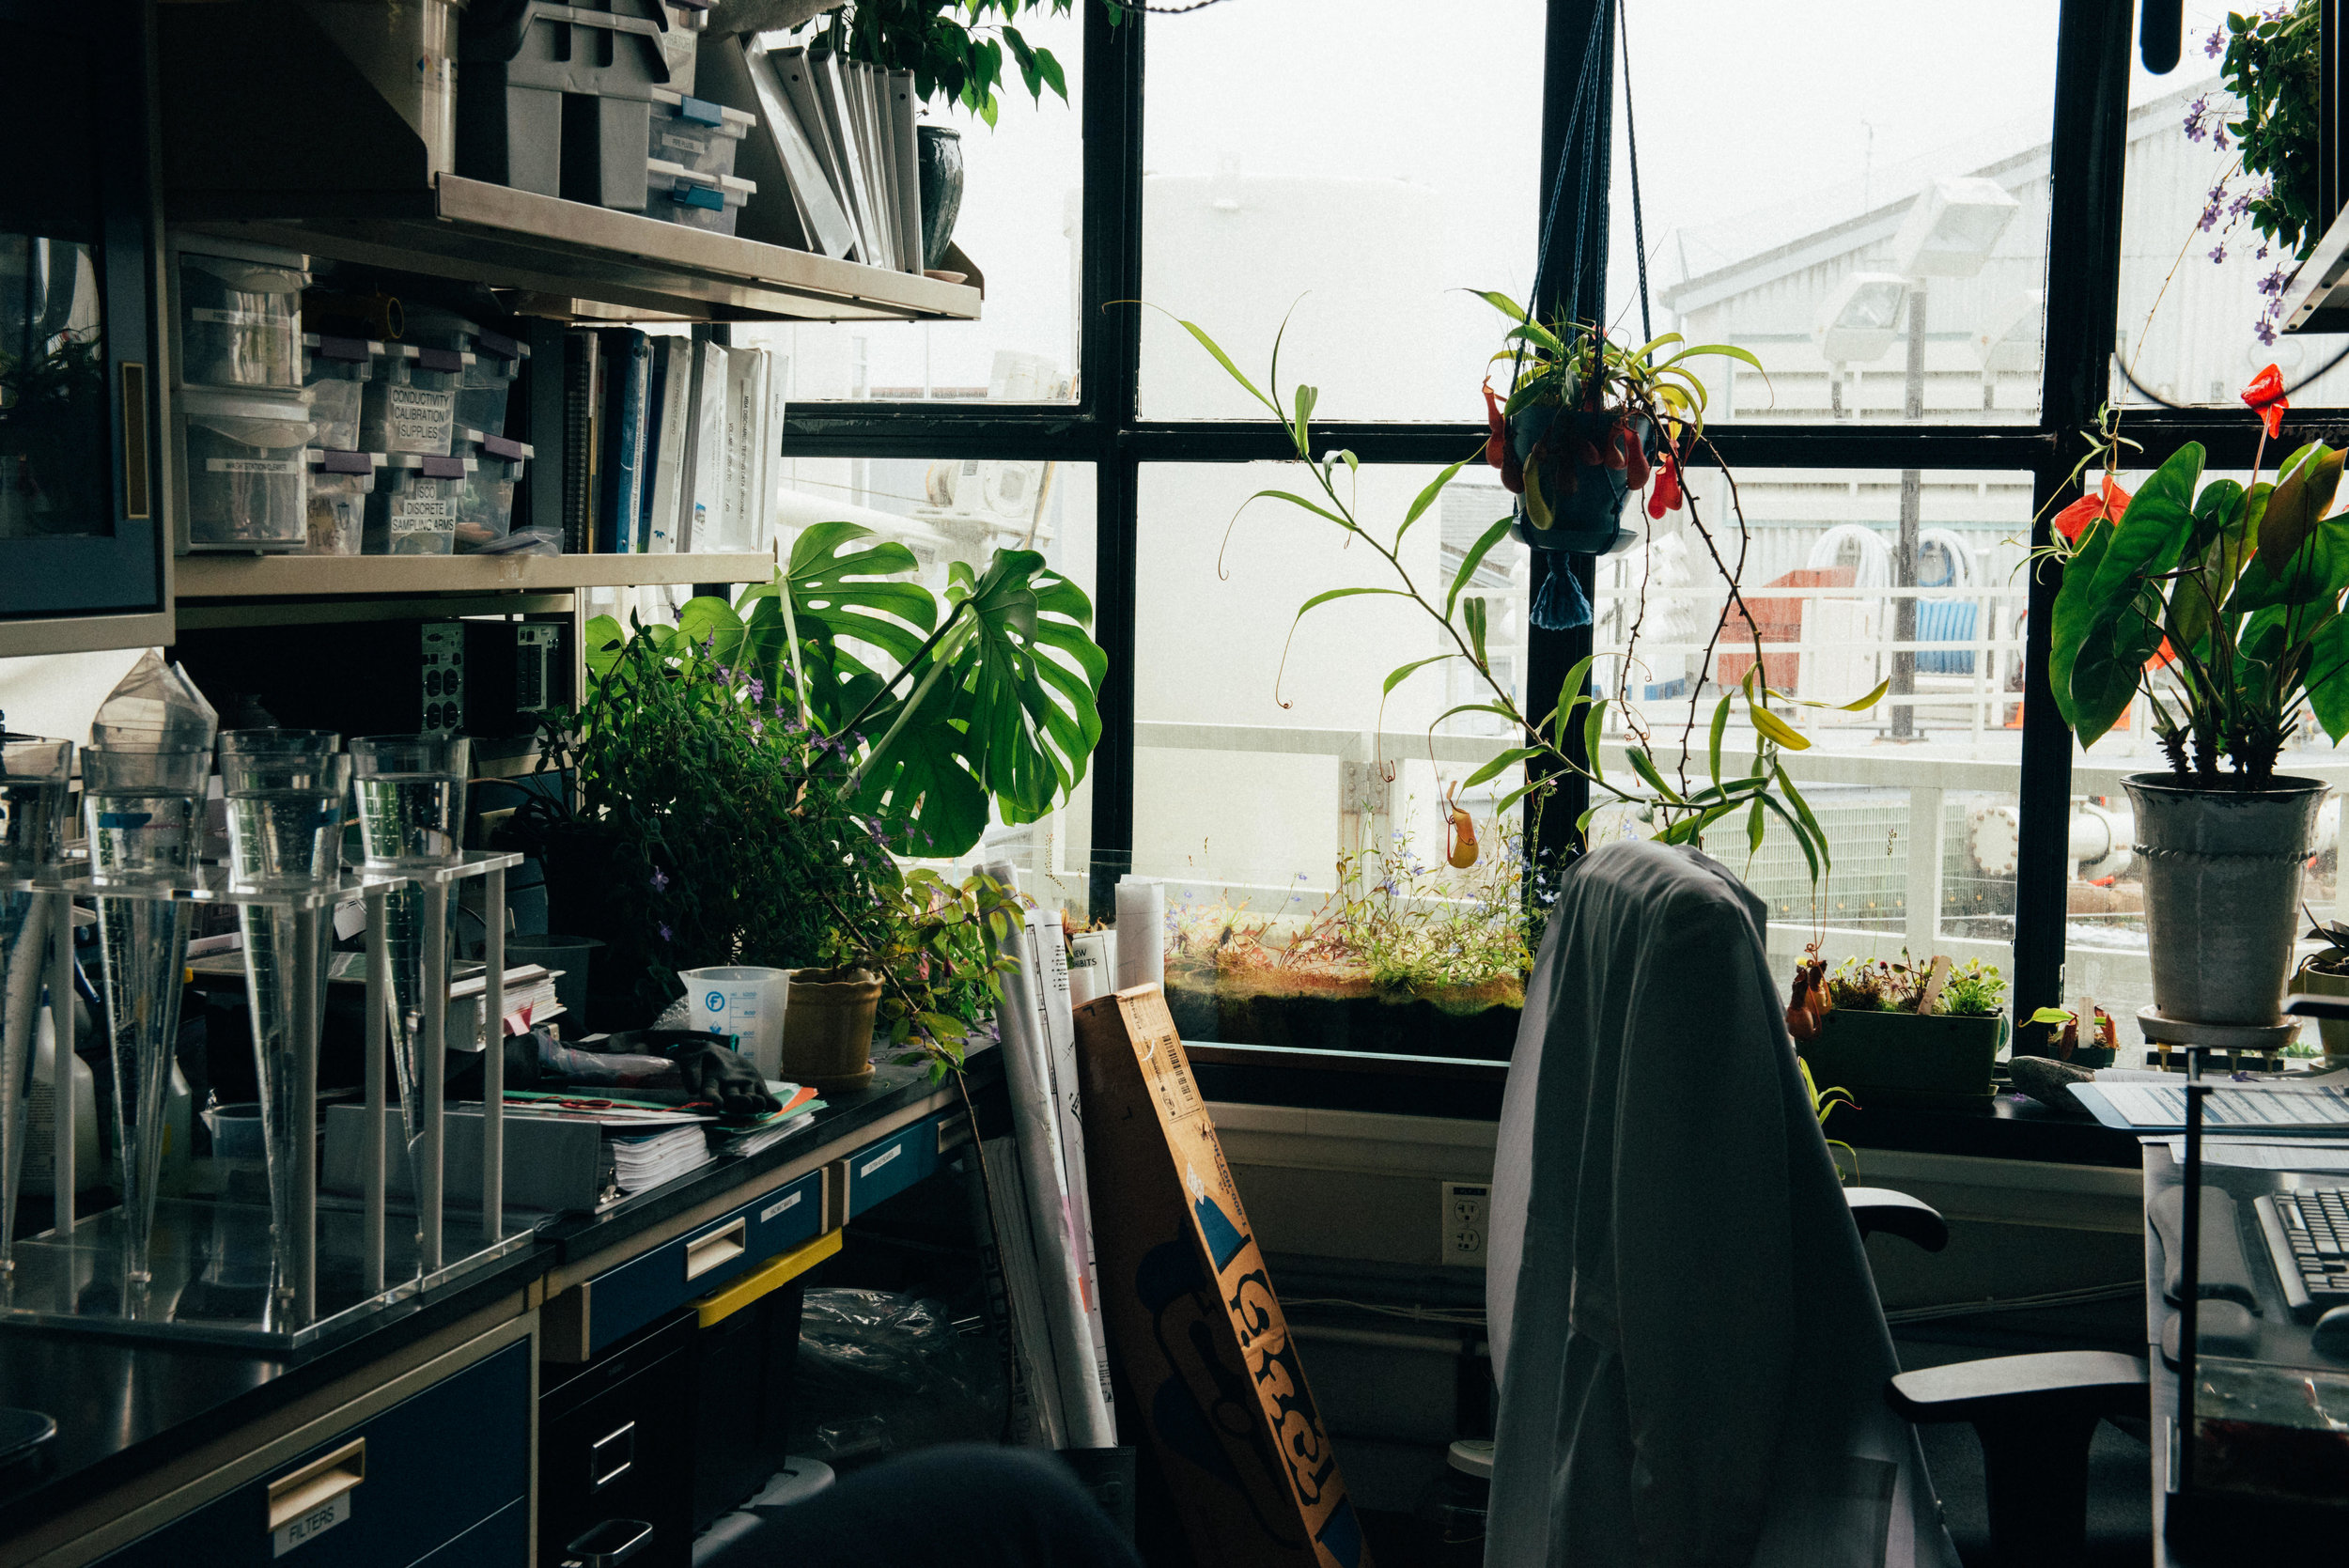 office with plants and scientific equipment.jpg